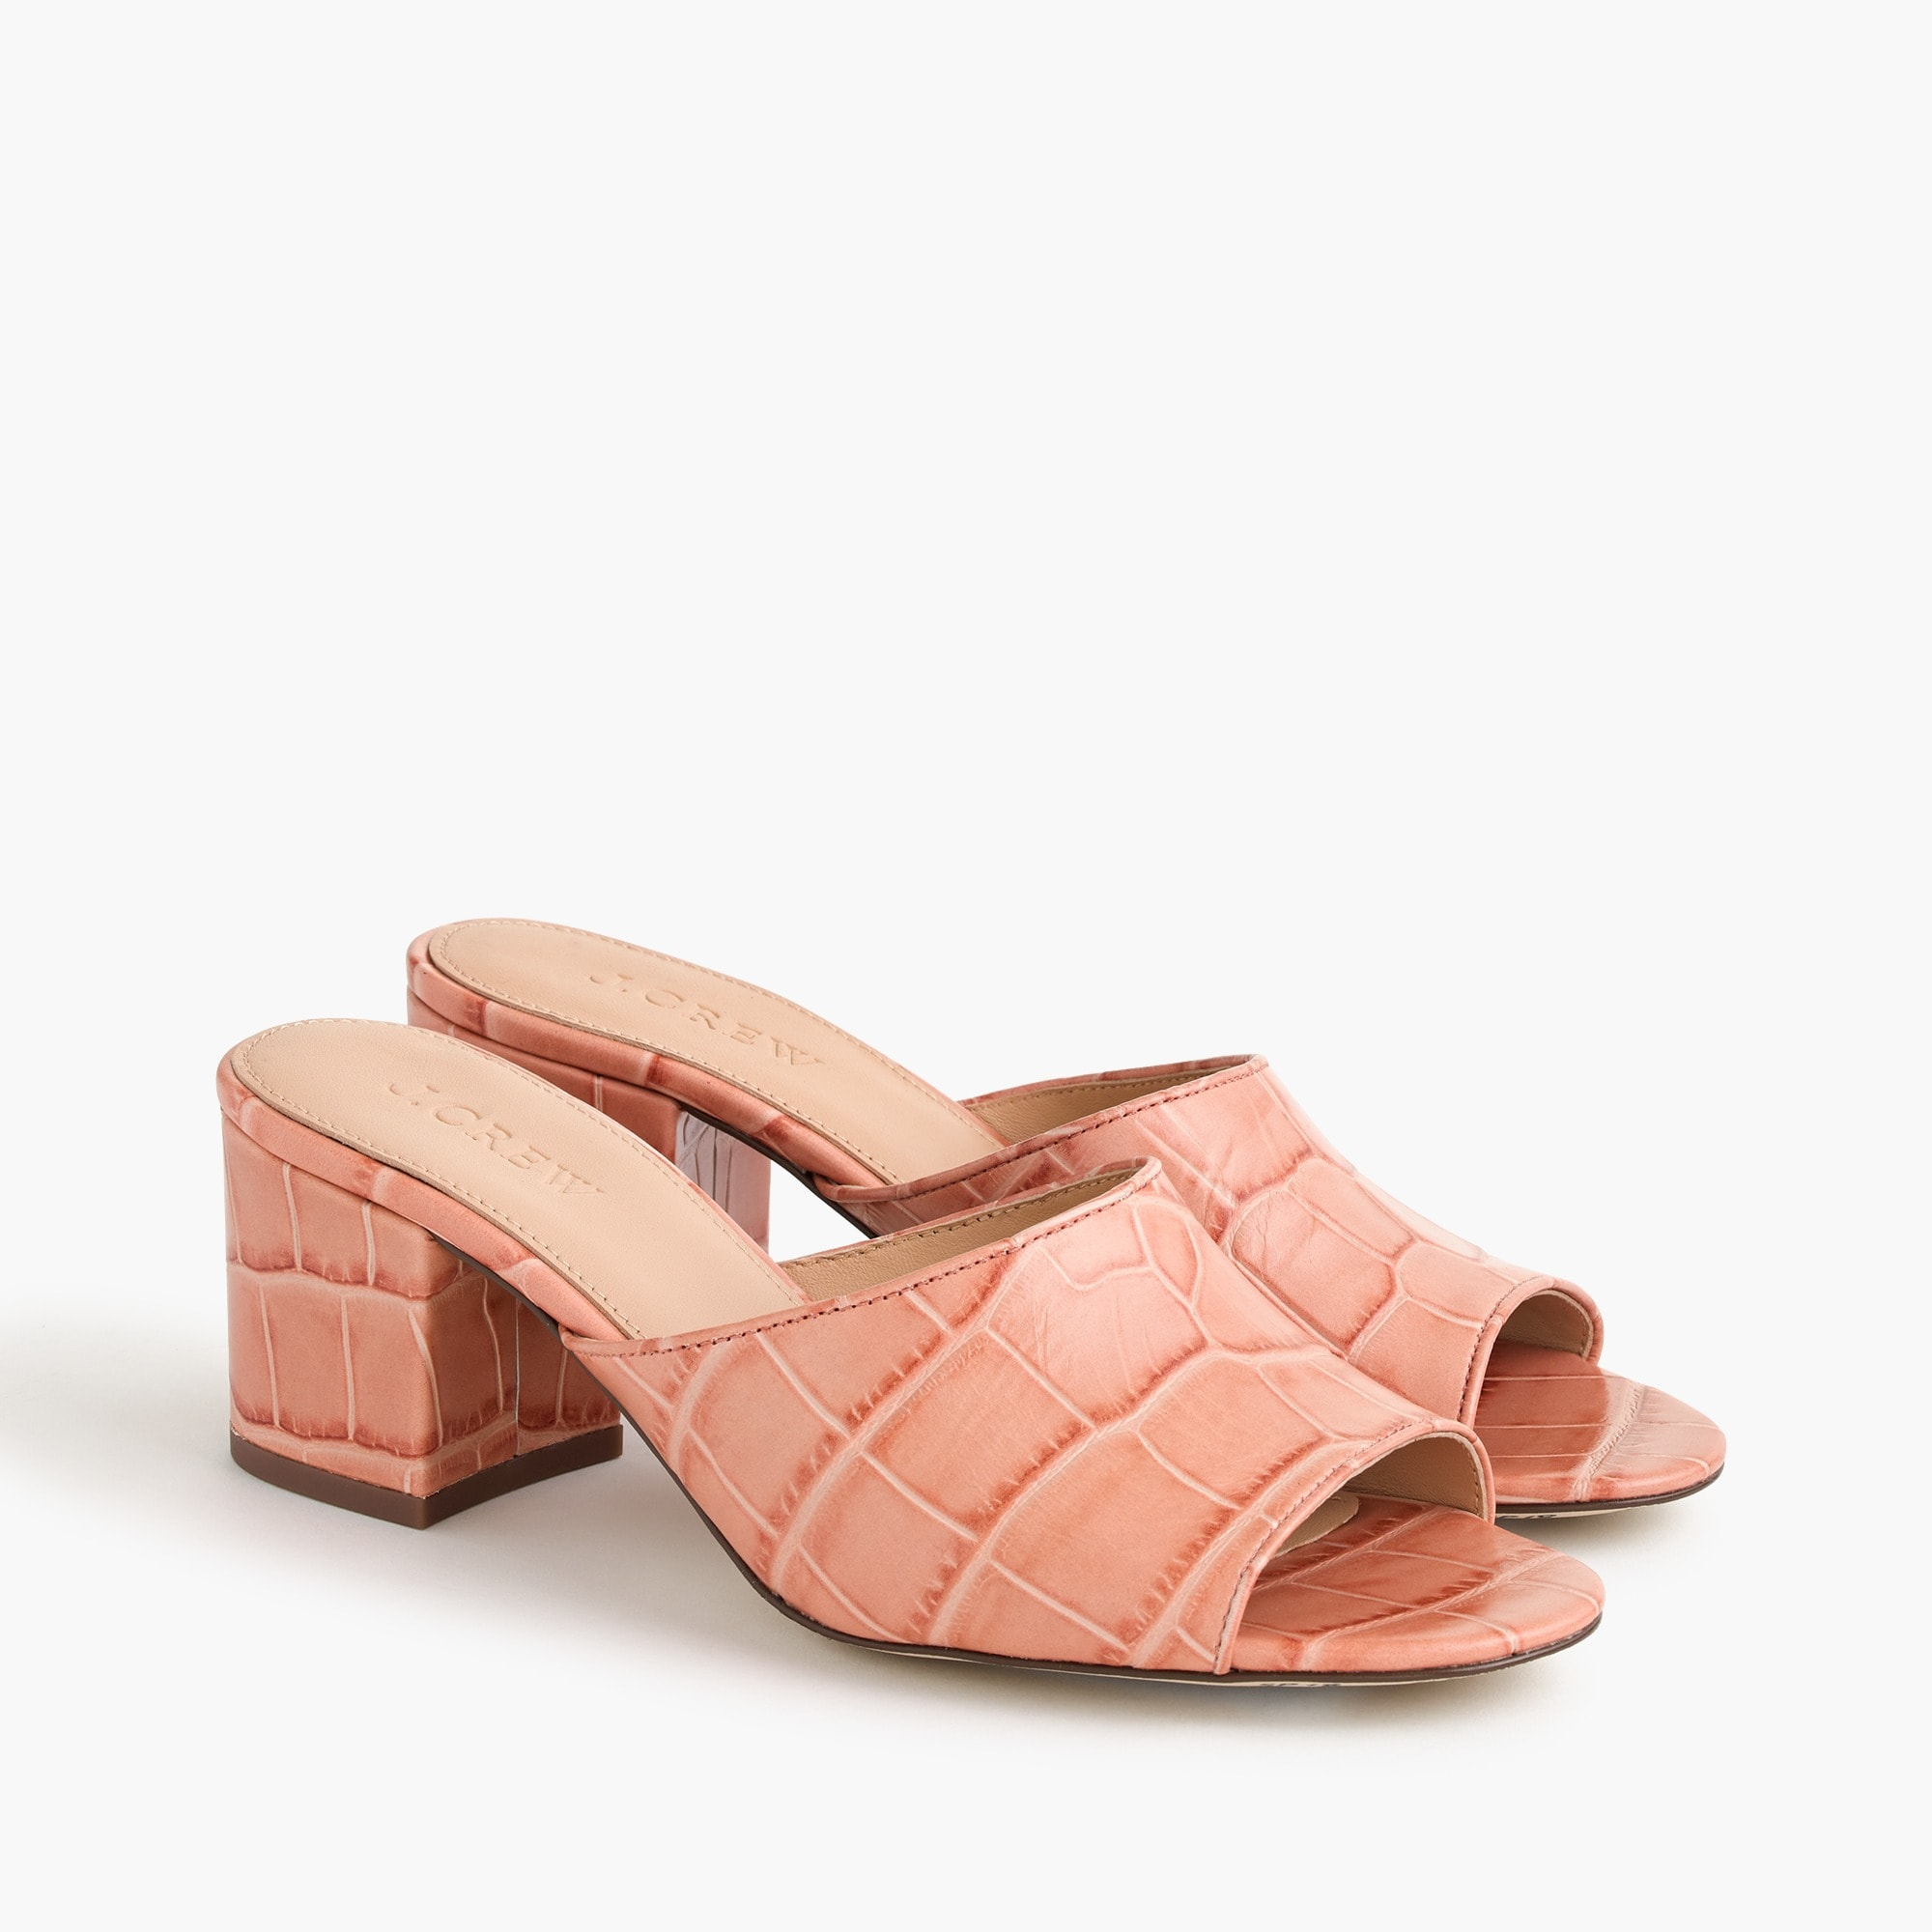 All-day mule (60mm) in croc-embossed leather women new arrivals c